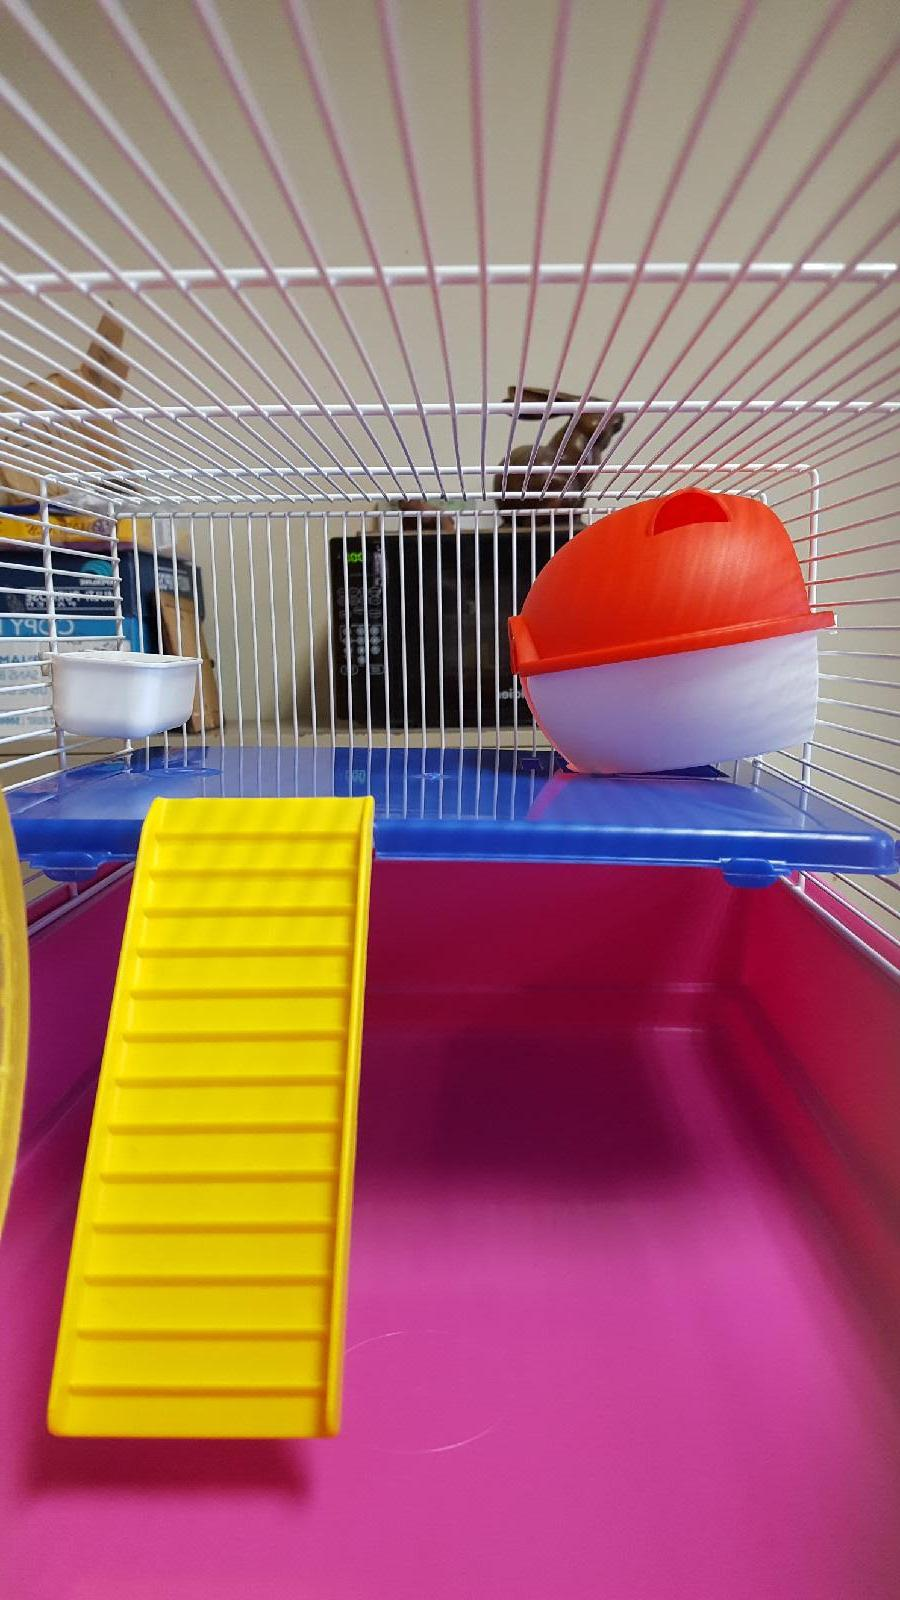 #DM 351WH HAMSTER CAGE